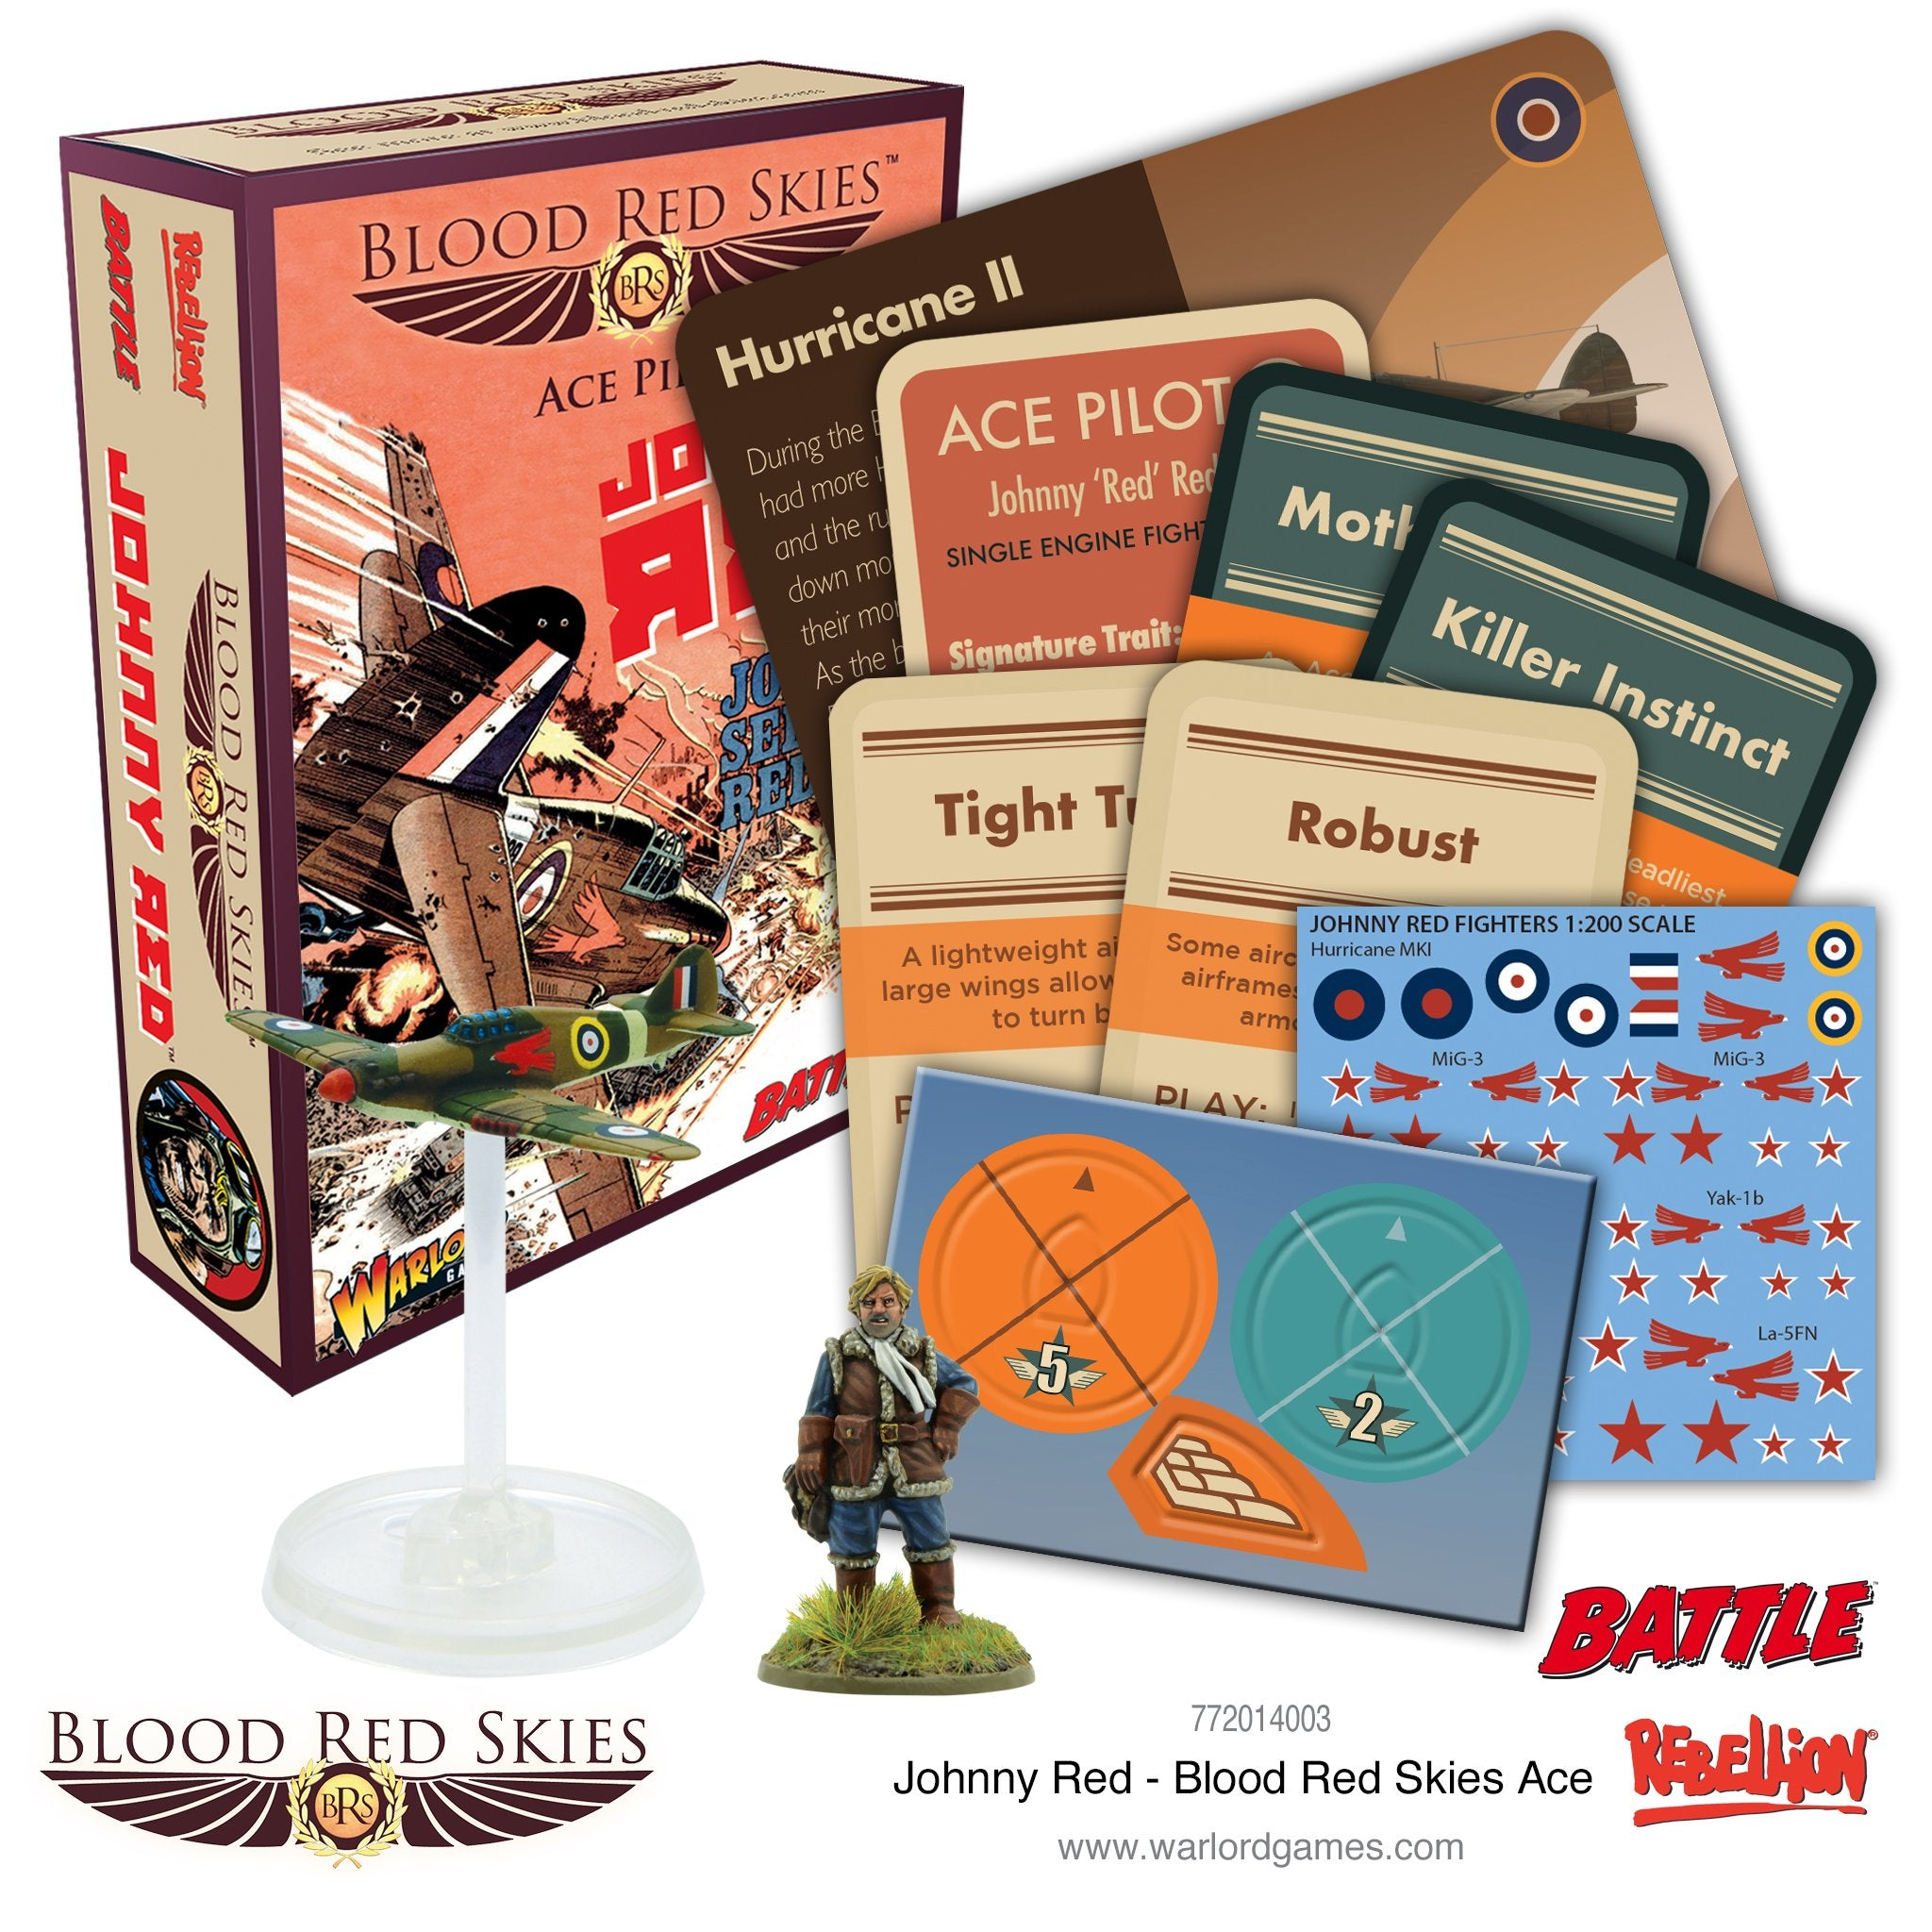 Johnny Red - Blood Red Skies Ace